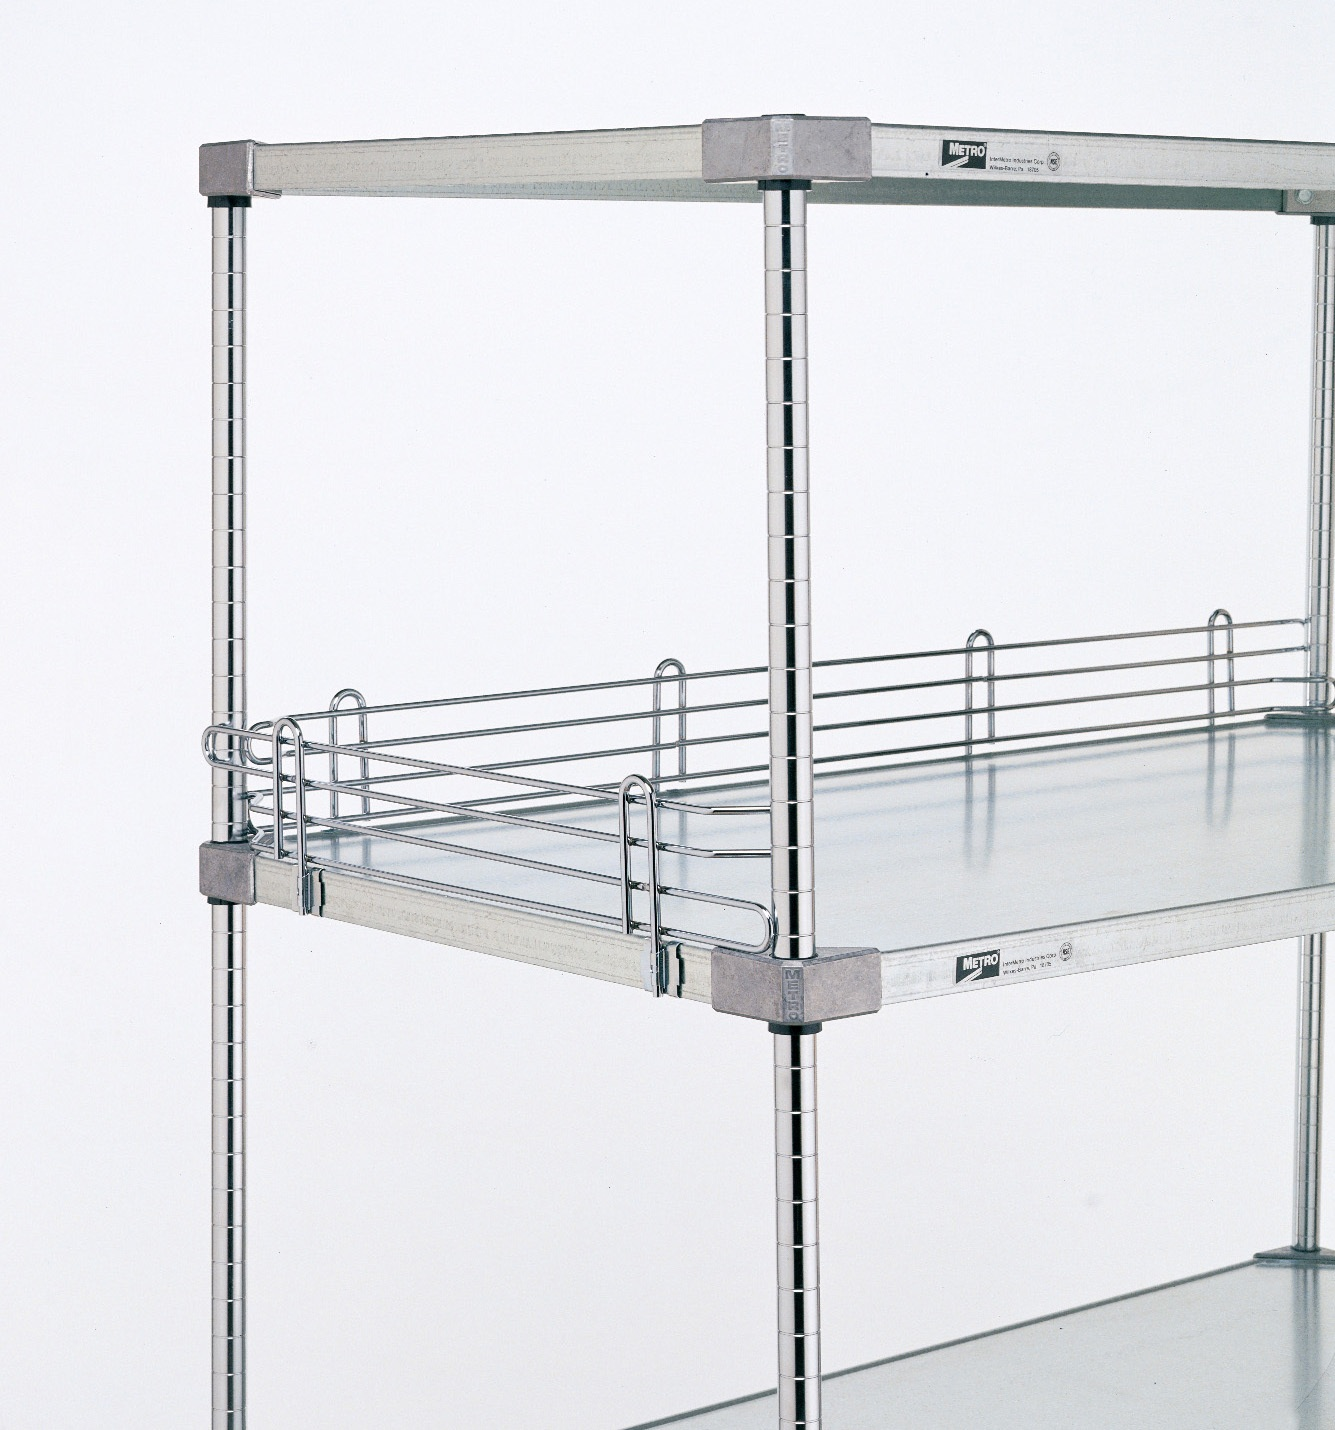 "Solid Shelving - Type 304 Solid Stainless shelving is available in standard format with black epoxy coated corners and all-stainless cart washable / autoclavable. Solid shelves can be easily adapted as a shelving unit, a solid bottom barrier on a wire shelving unit, or as a customizable work station. Raised 1/8"" ship's edges surrounding the perimeter helps contain spills.Standard Stainless Steel with black epoxy corners• Ideal for applications that require a solid surface with a high level of corrosion protection• Available in flat and louvered/embossed styles. Louvered/embossed shelves have holes to allow air circulation.• Shelves up to 48"" (1219mm) have maximum weight load capacity of 800 lbs• 18 gauge galvanized steel shelving also available and suitable for dry environments."